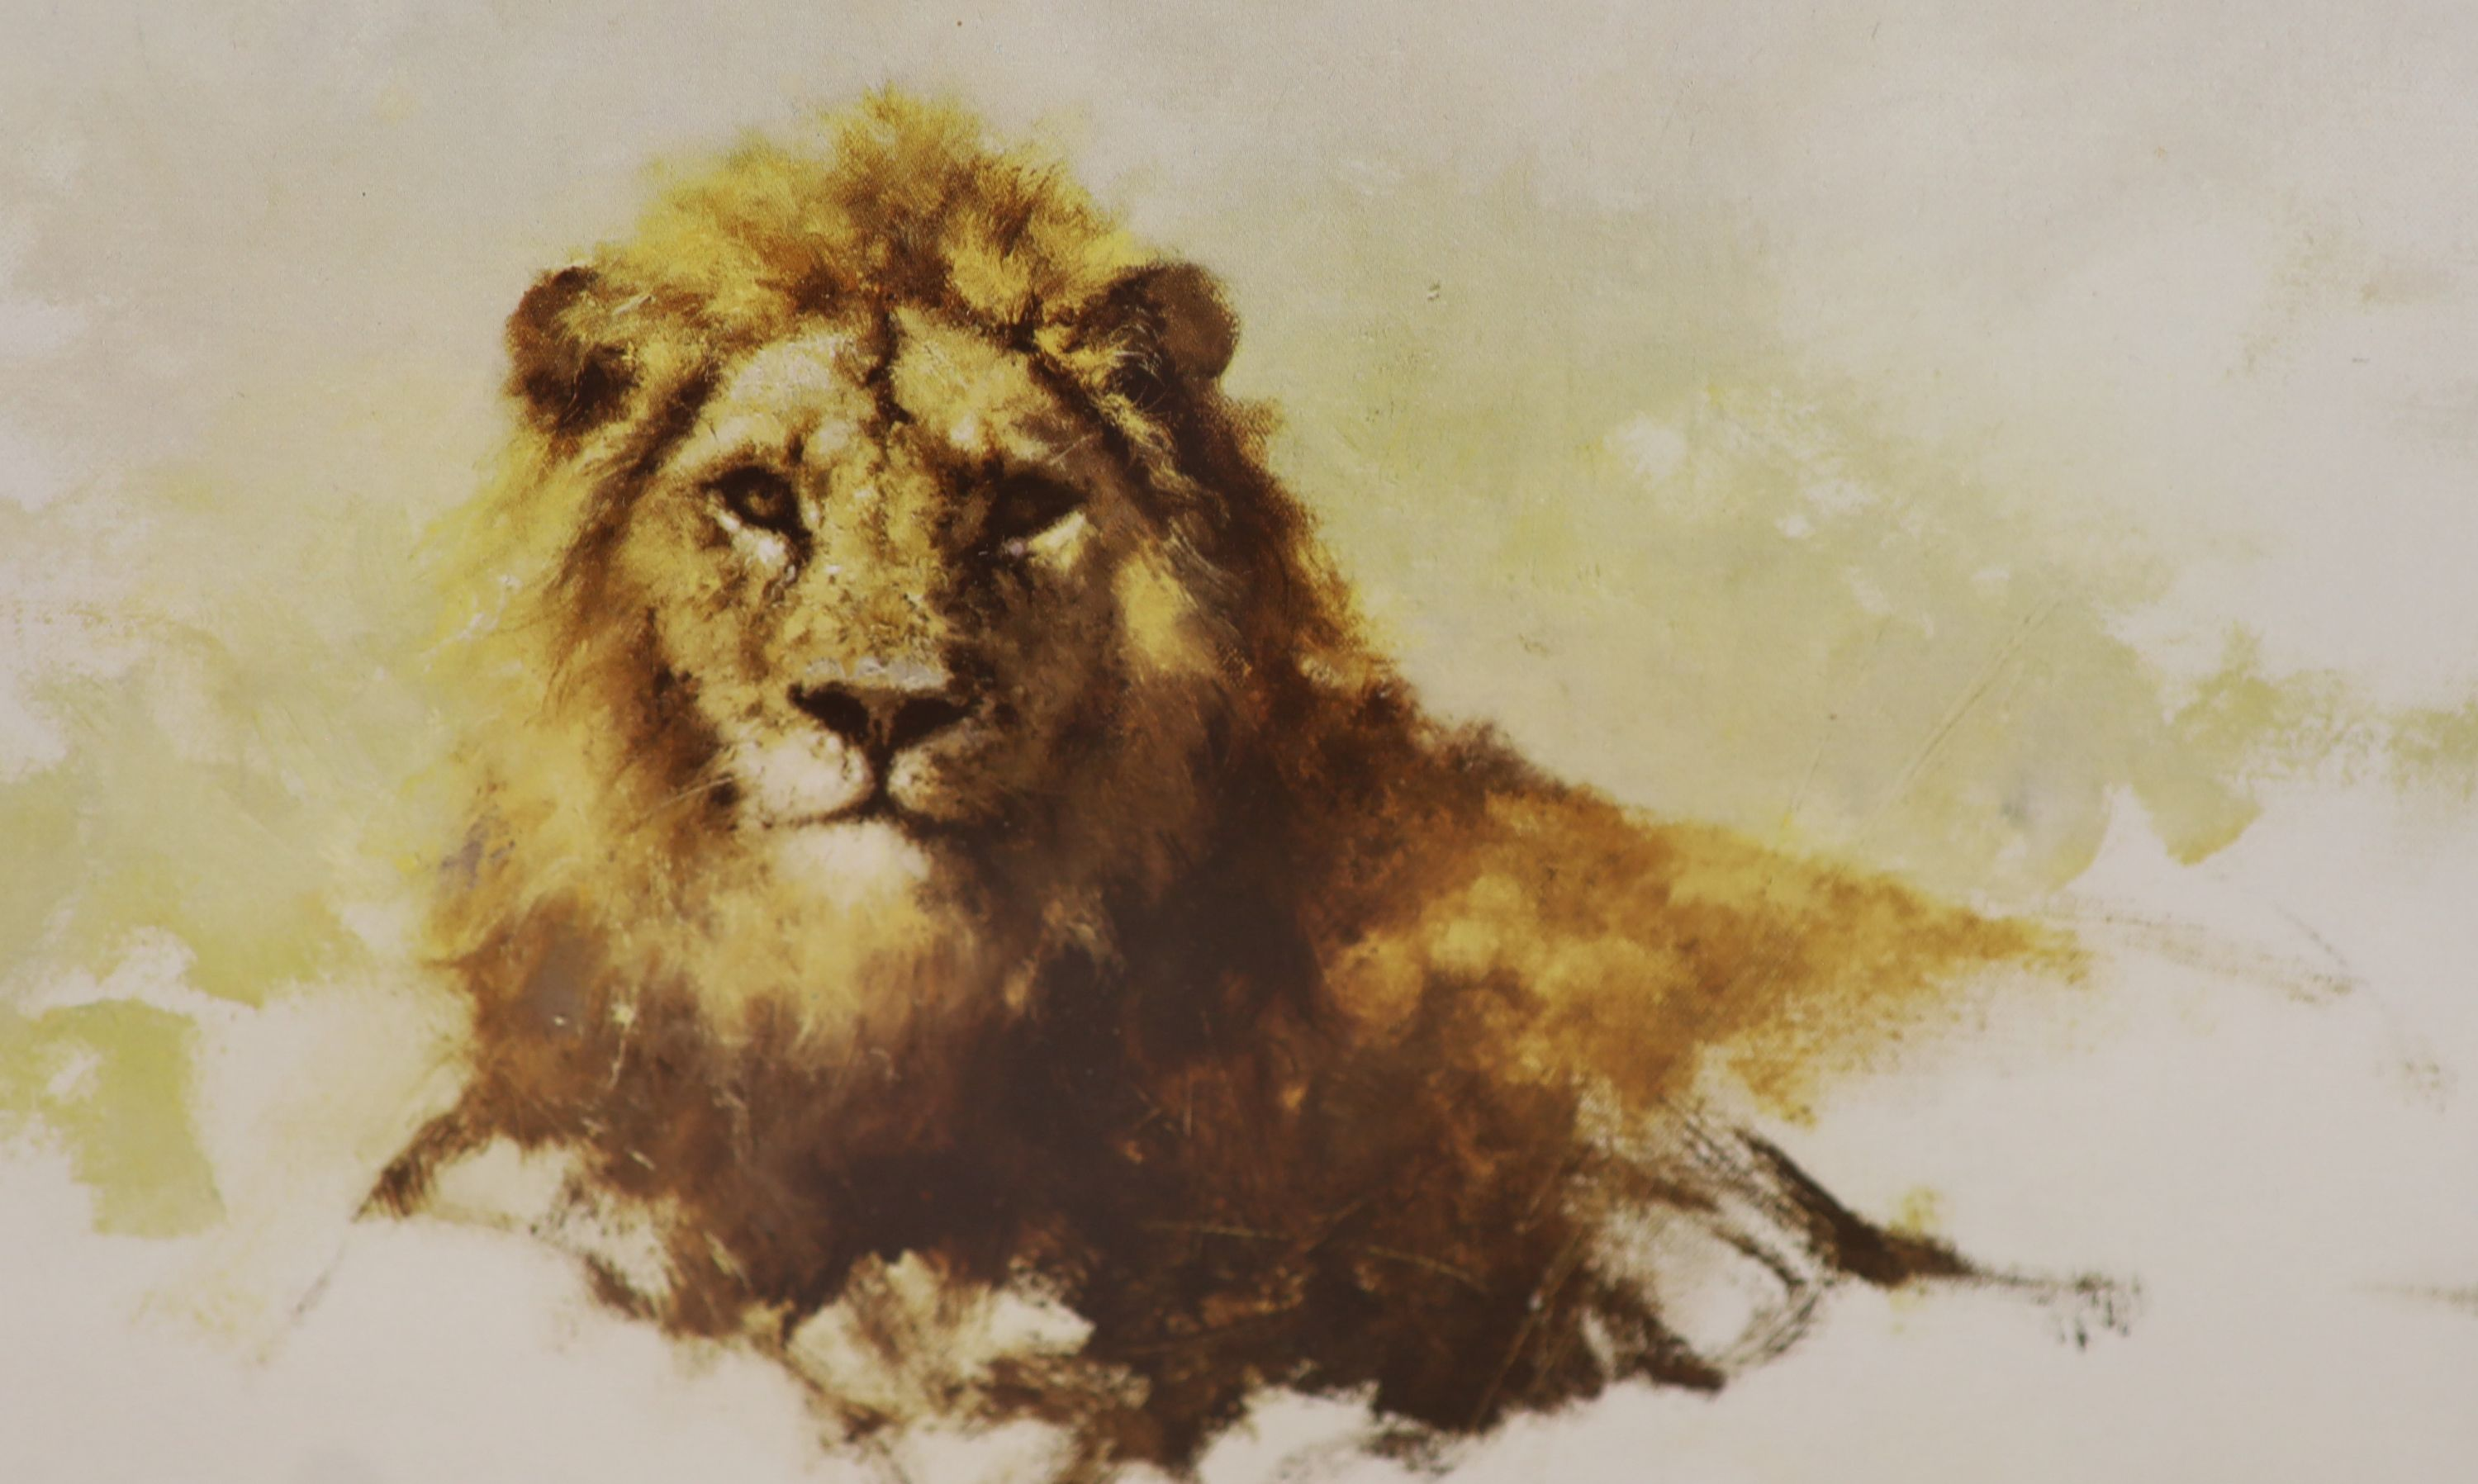 Three David Shepherd limited edition prints; Lion Sketch, Tiger Sketch and Rhino Reverie, signed - Image 4 of 4